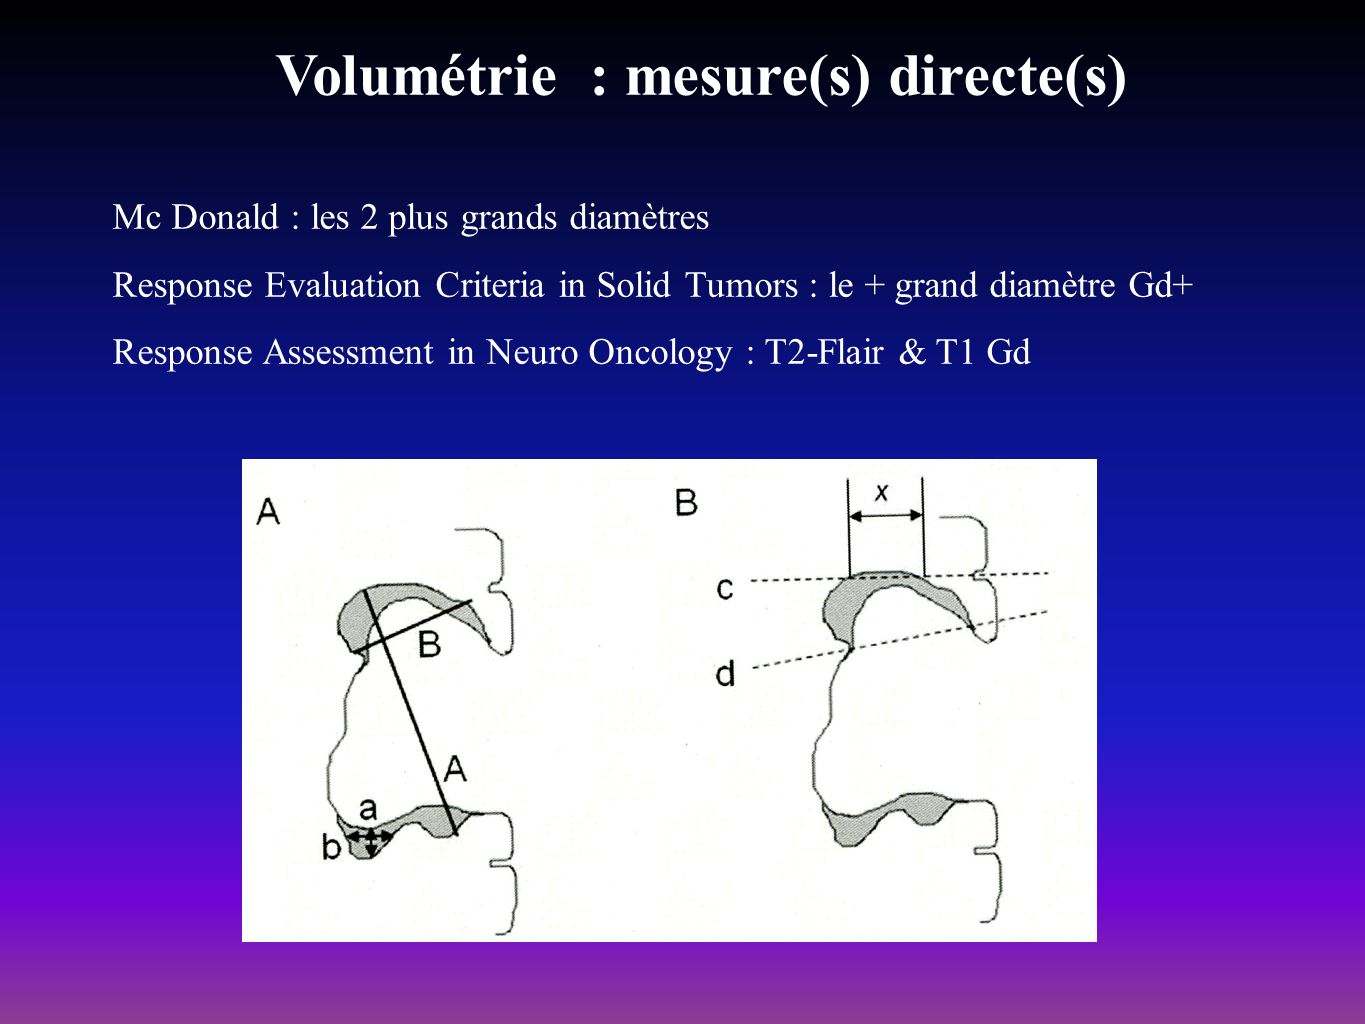 Volumétrie : mesure(s) directe(s) Mc Donald : les 2 plus grands diamètres Response Evaluation Criteria in Solid Tumors : le + grand diamètre Gd+ Respo